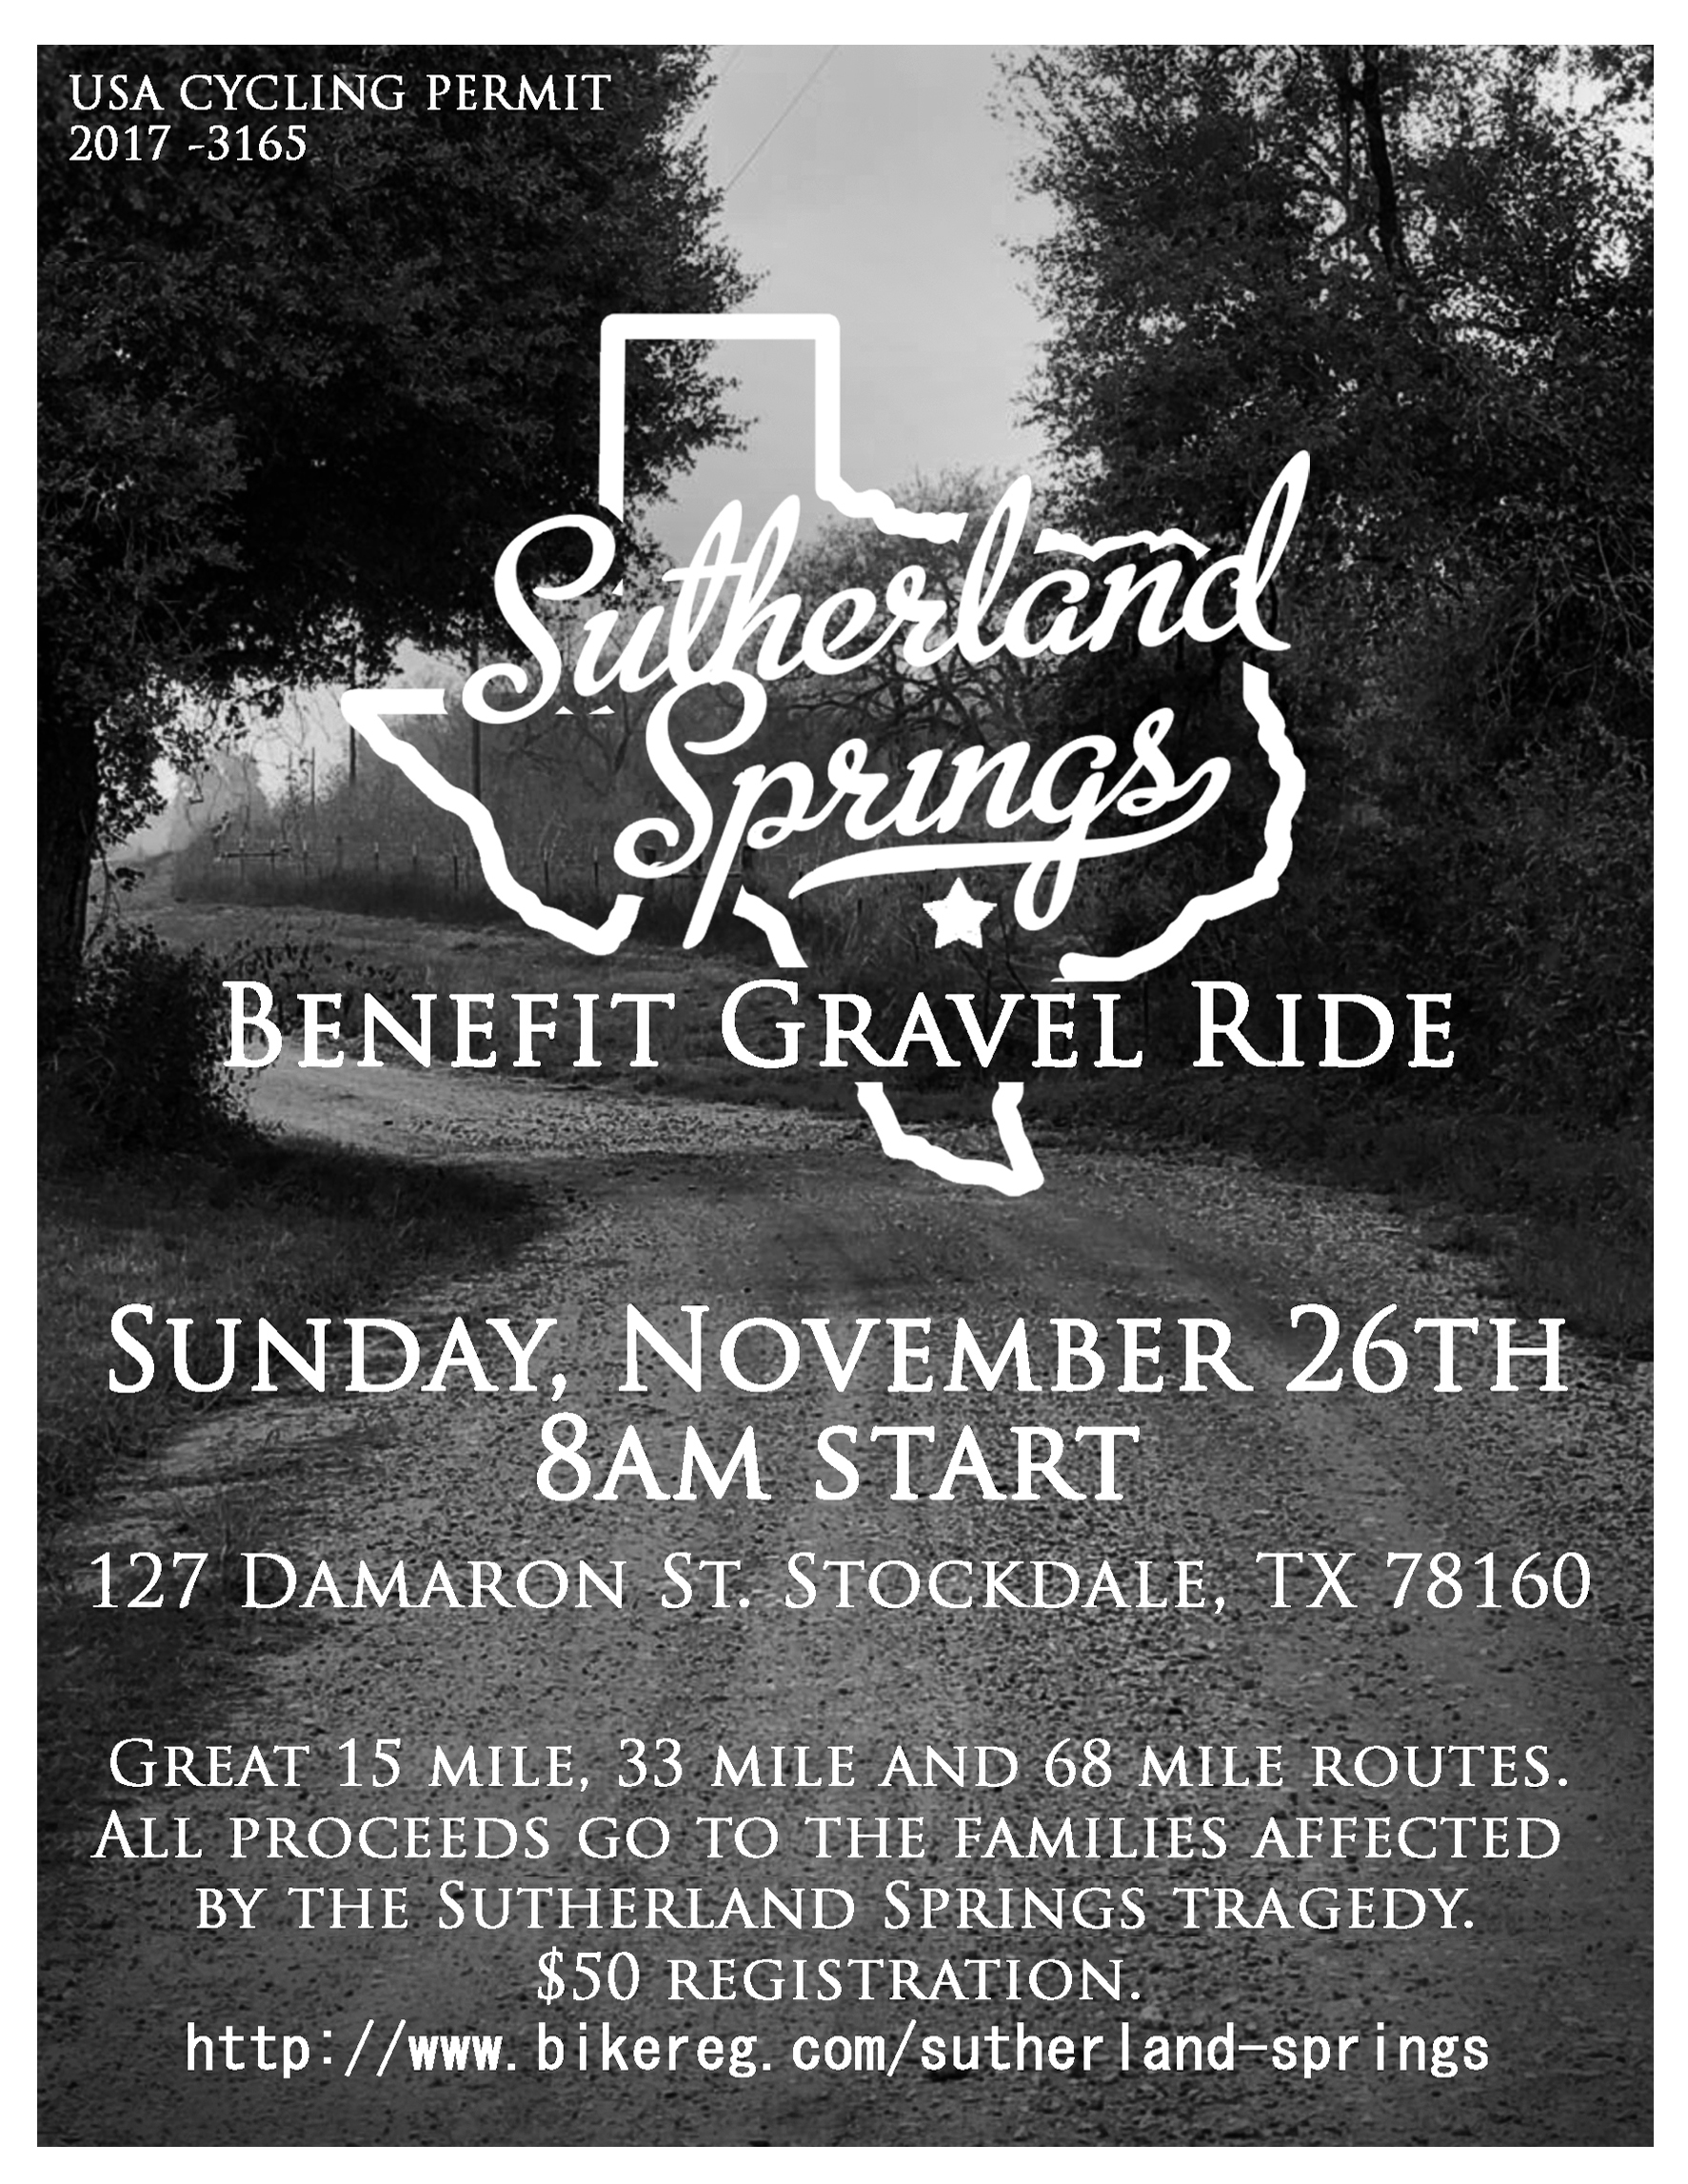 Sutherland Springs Benefit Gravel Ride full